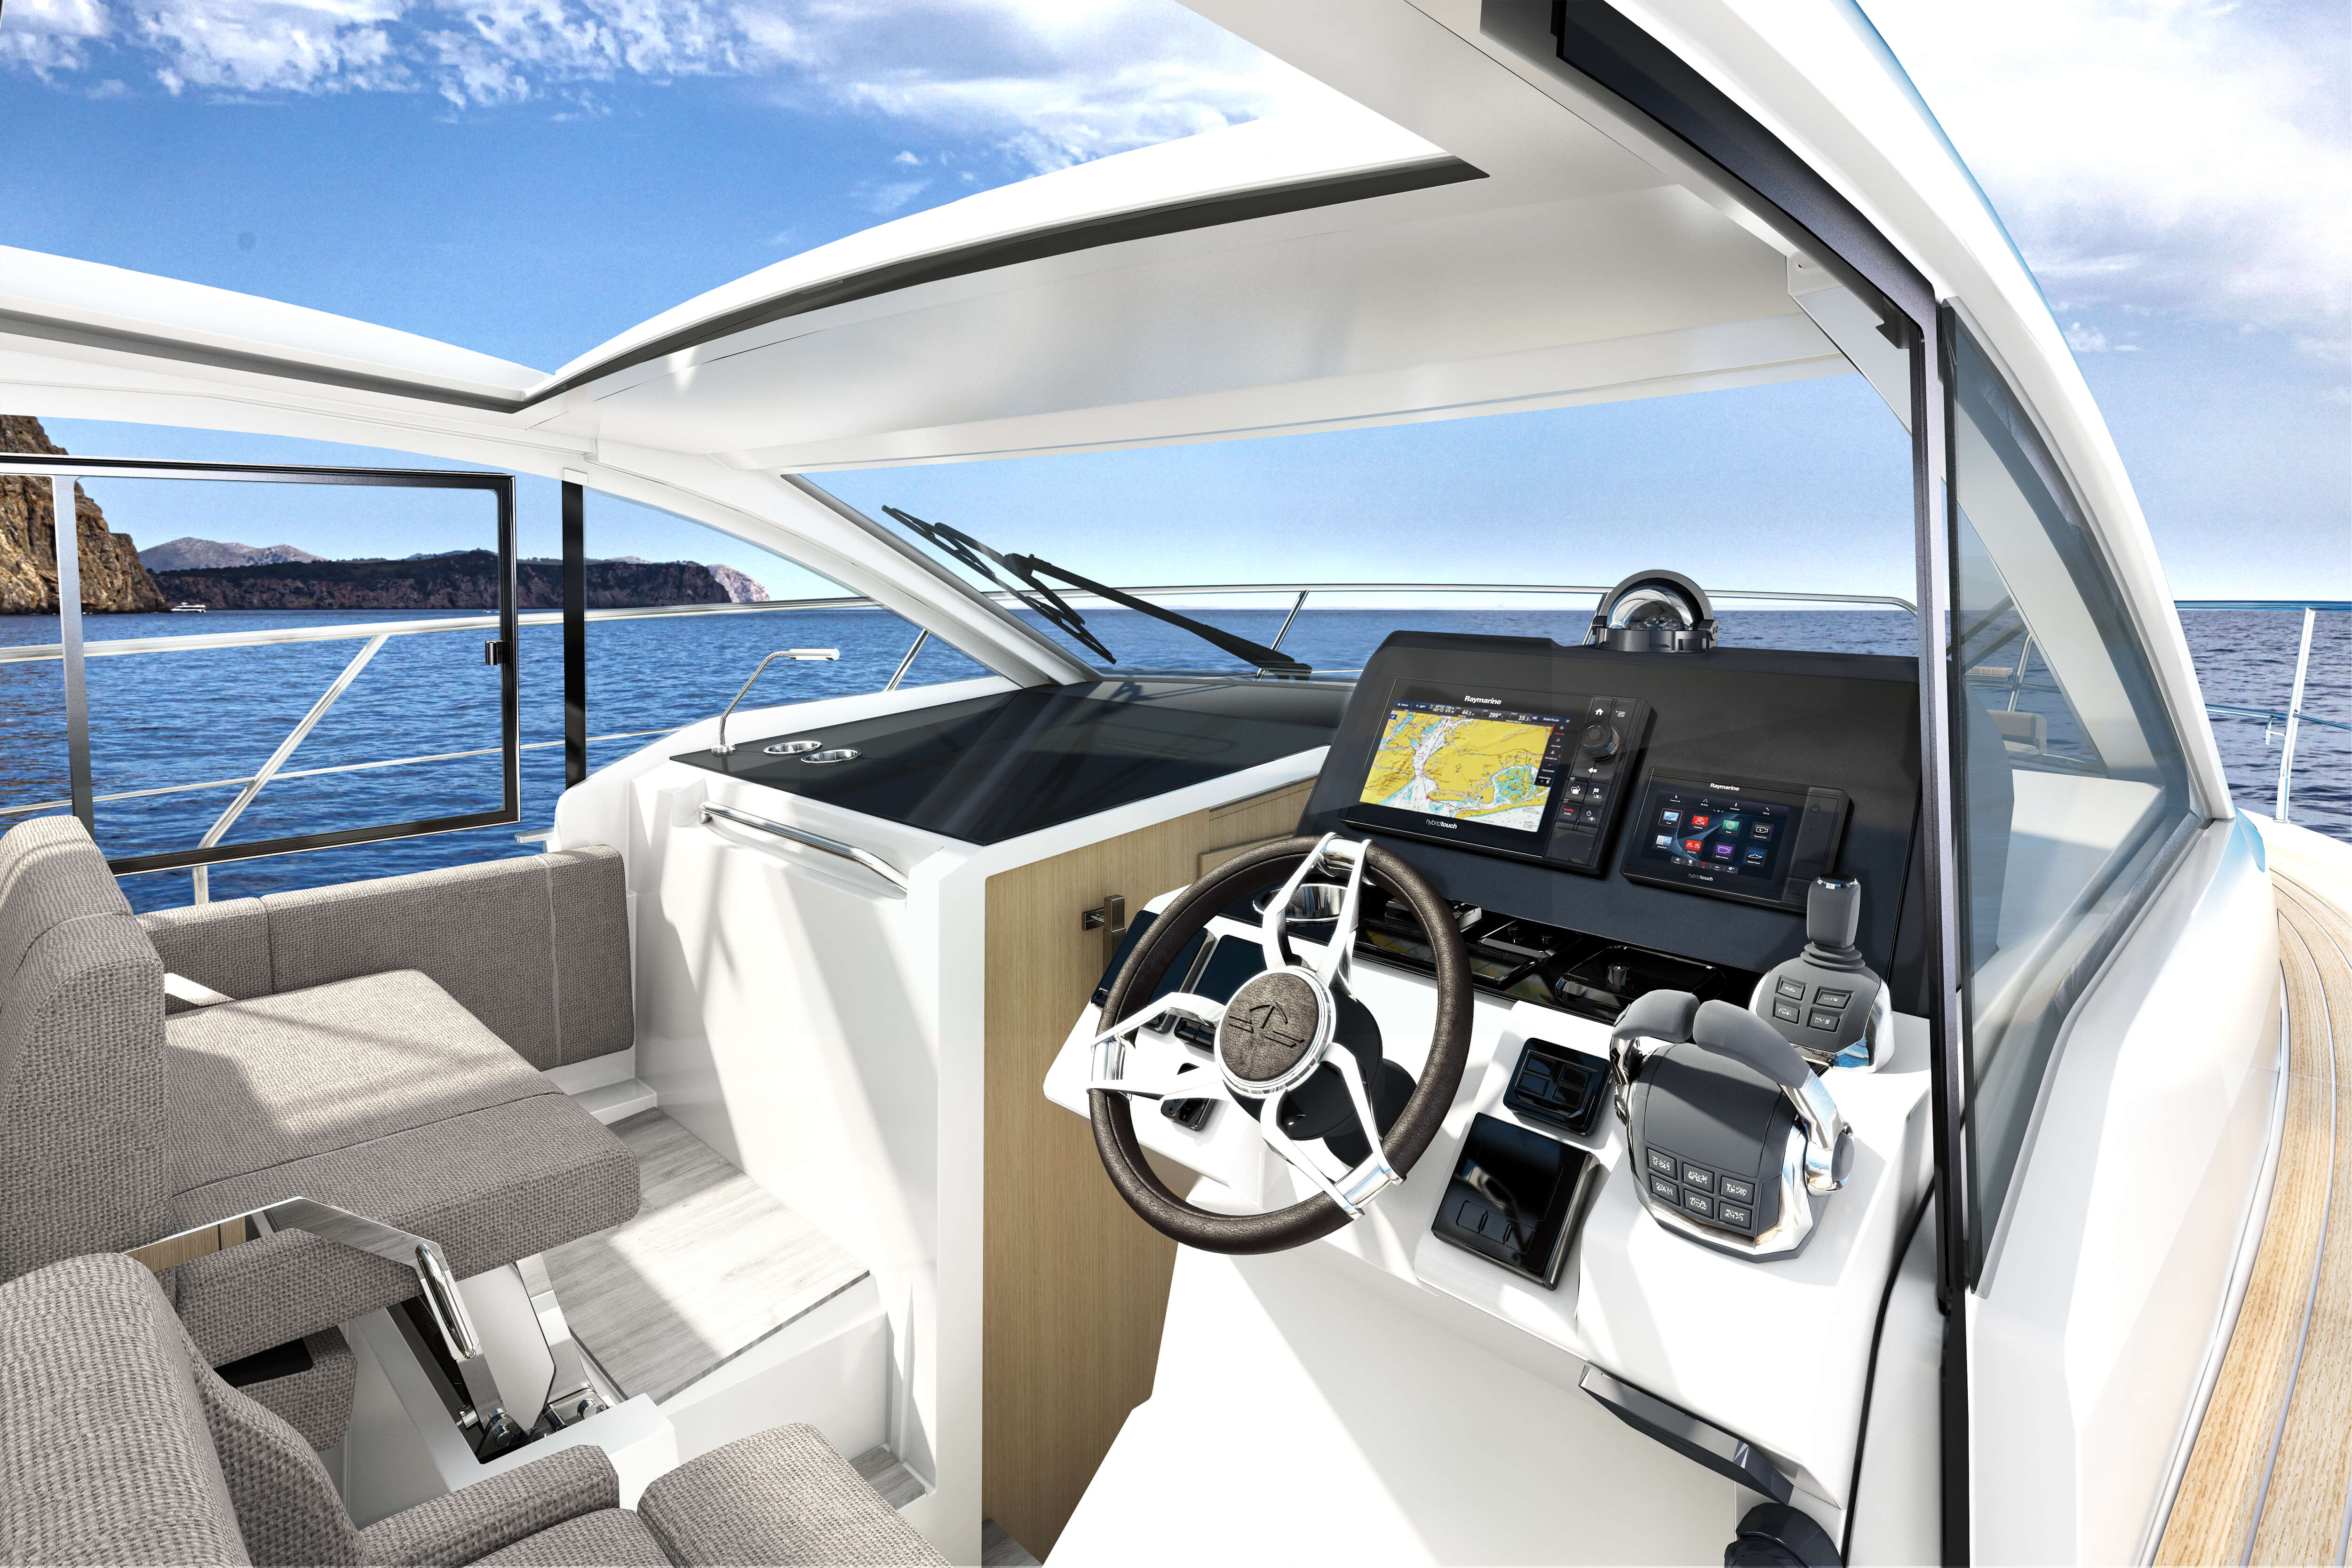 Sealine C335 helm | The helm position provides you with 360 degree visibility thanks the the large windscreen and side windows. | Sealine